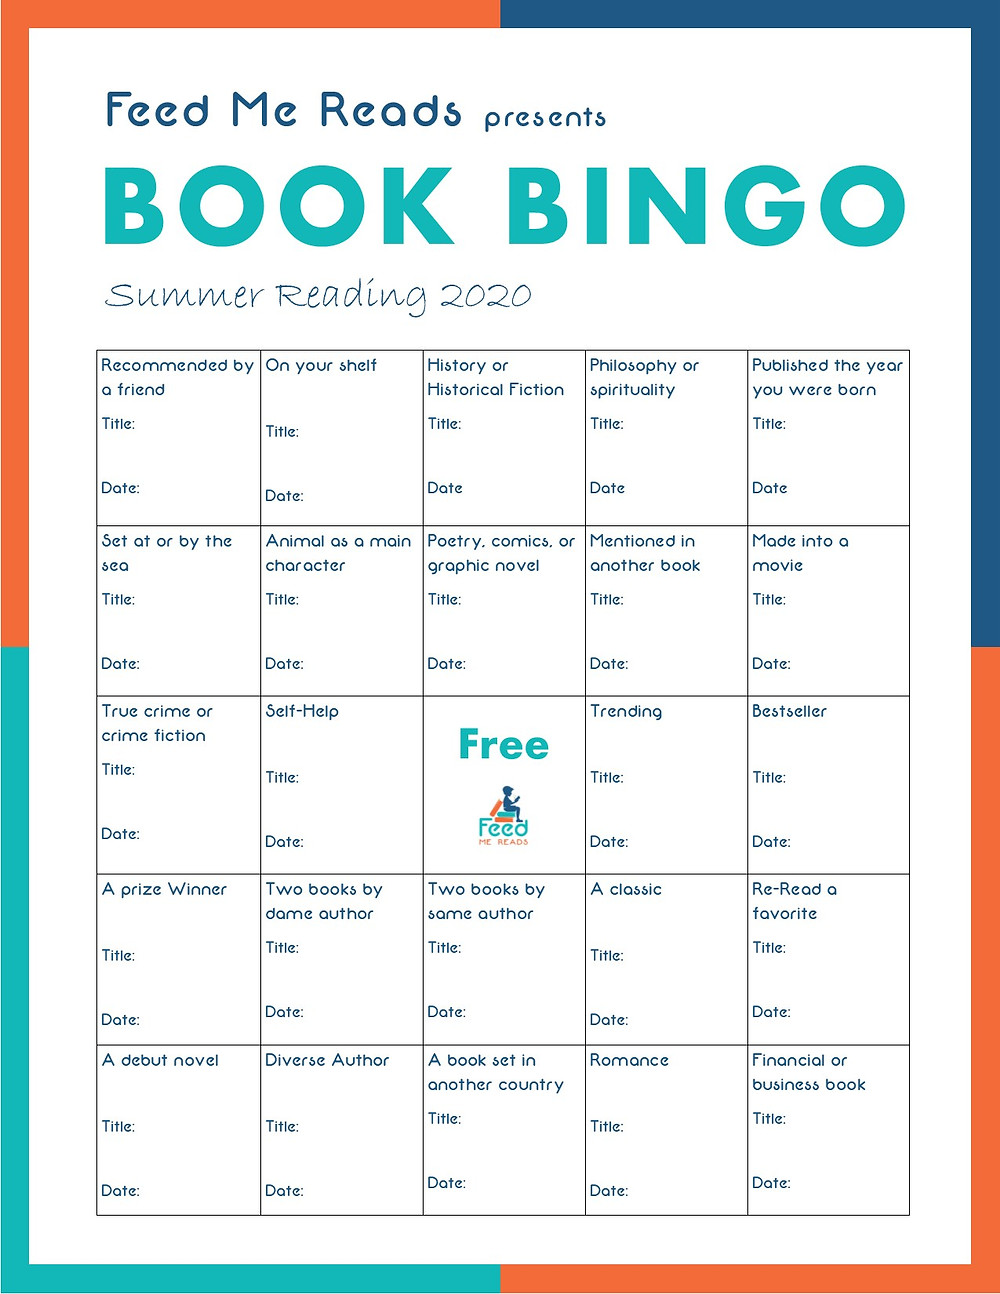 Feed Me Reads summer reading 2020 book bingo challenge